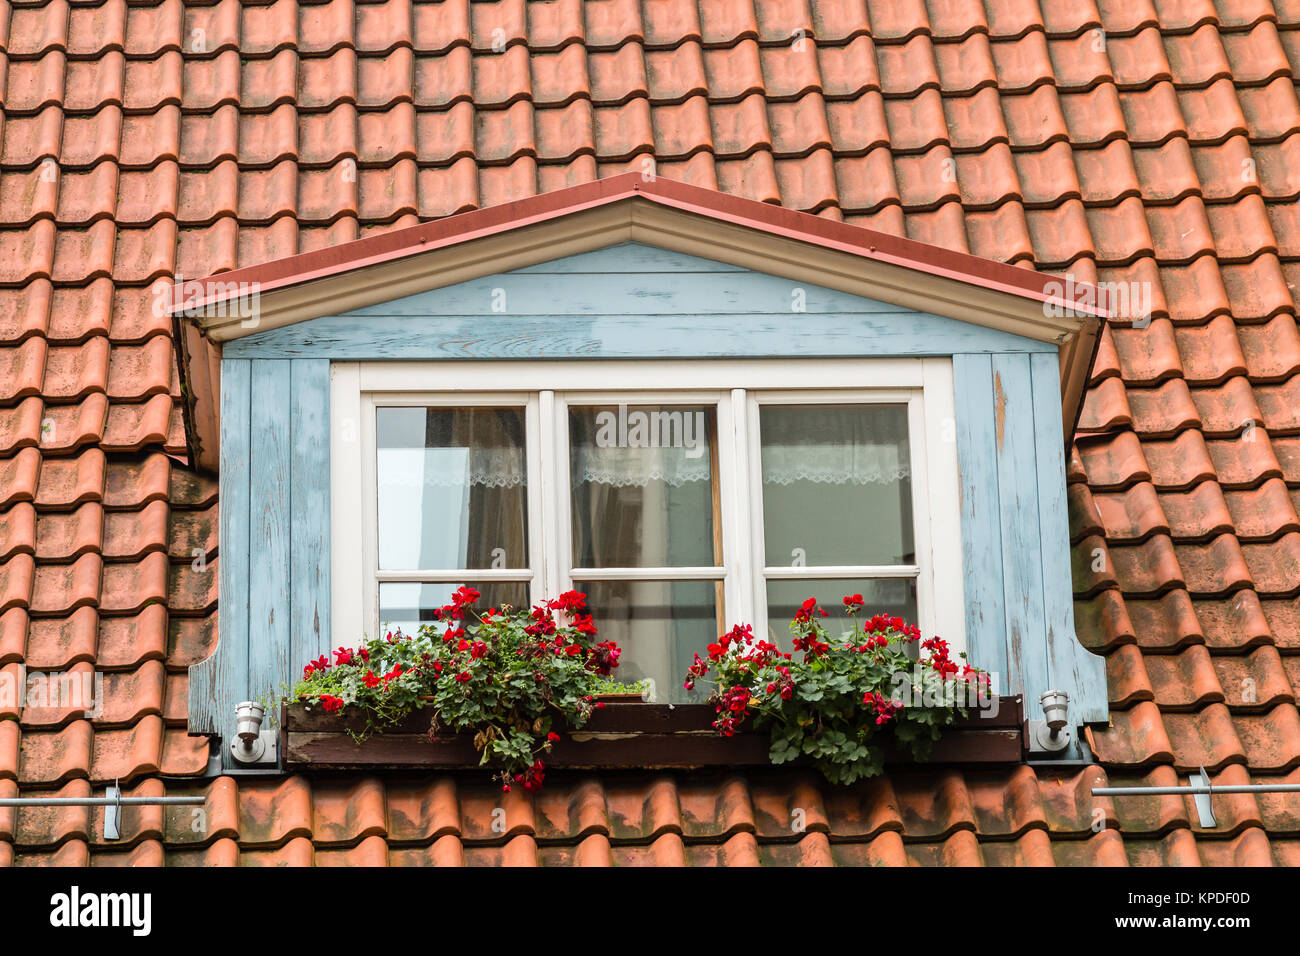 Blue painted window in the roof of a traditional Latvian house in Riga Latvia.  The window box has red flowers - Stock Image